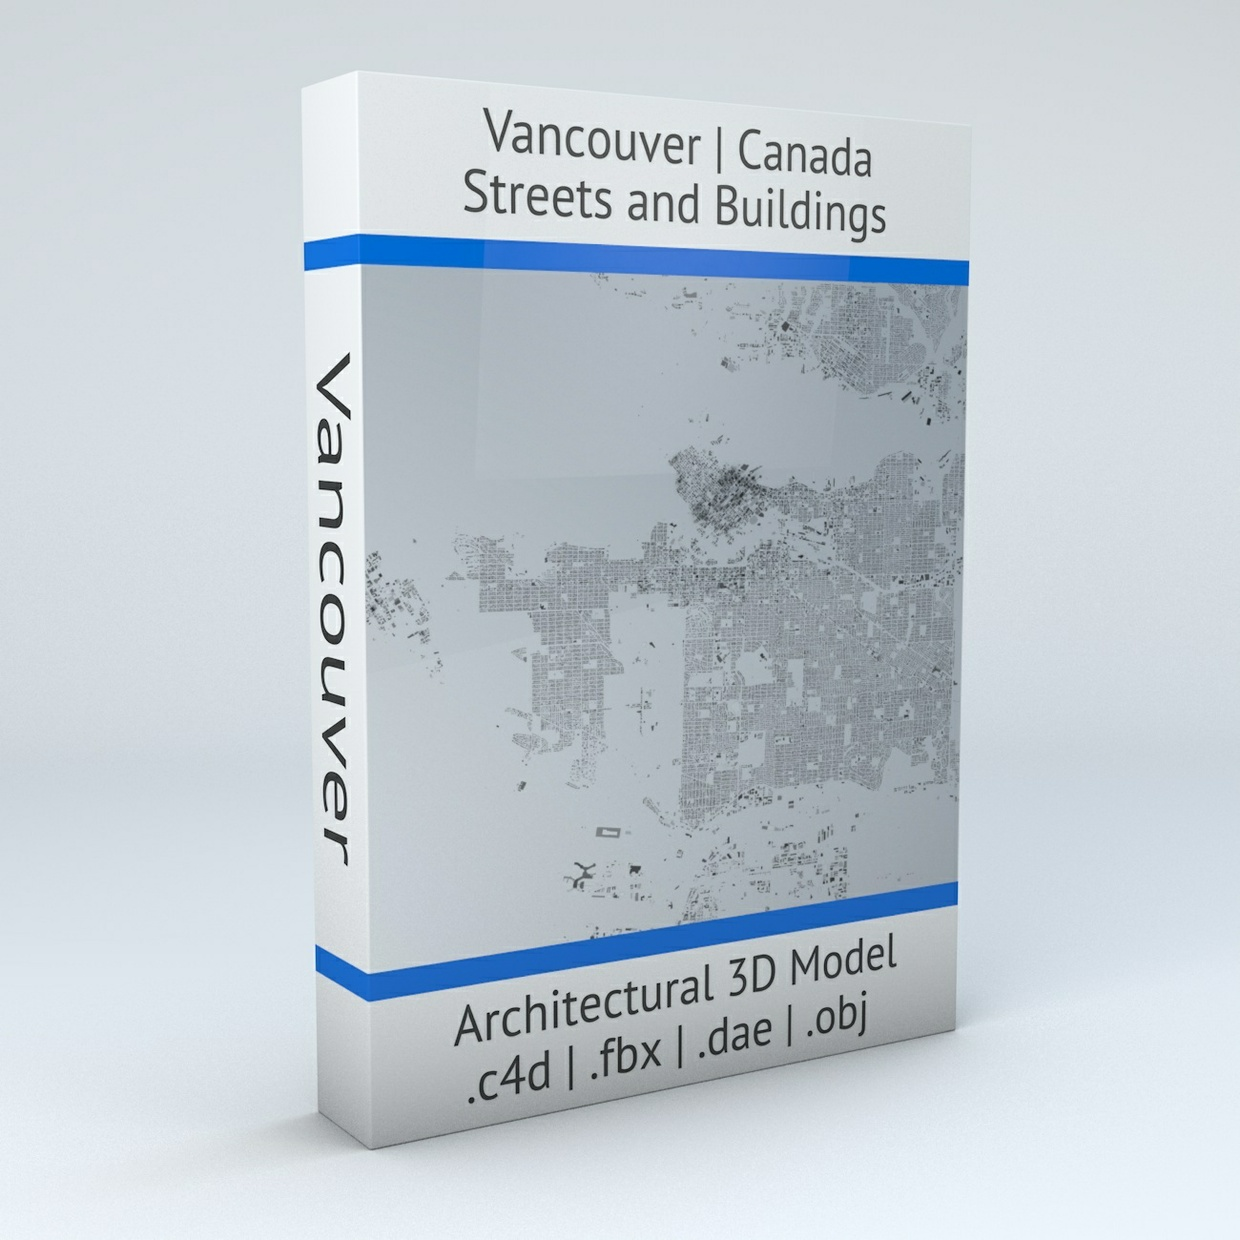 Vancouver Streets and Buildings Architectural 3D Model